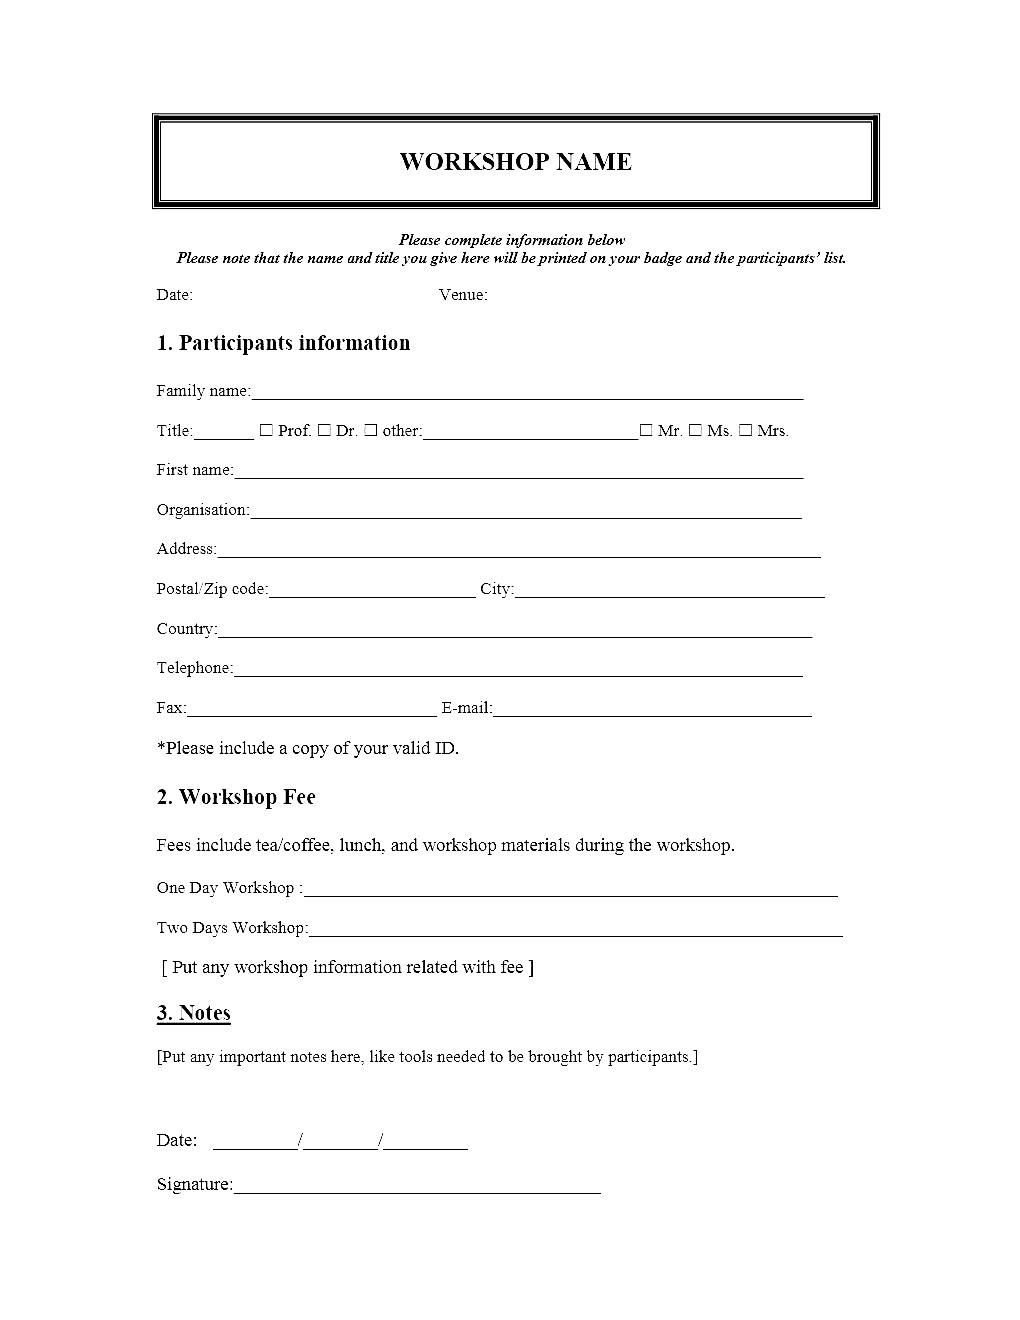 Registration forms Template Free event Registration form Template Microsoft Word